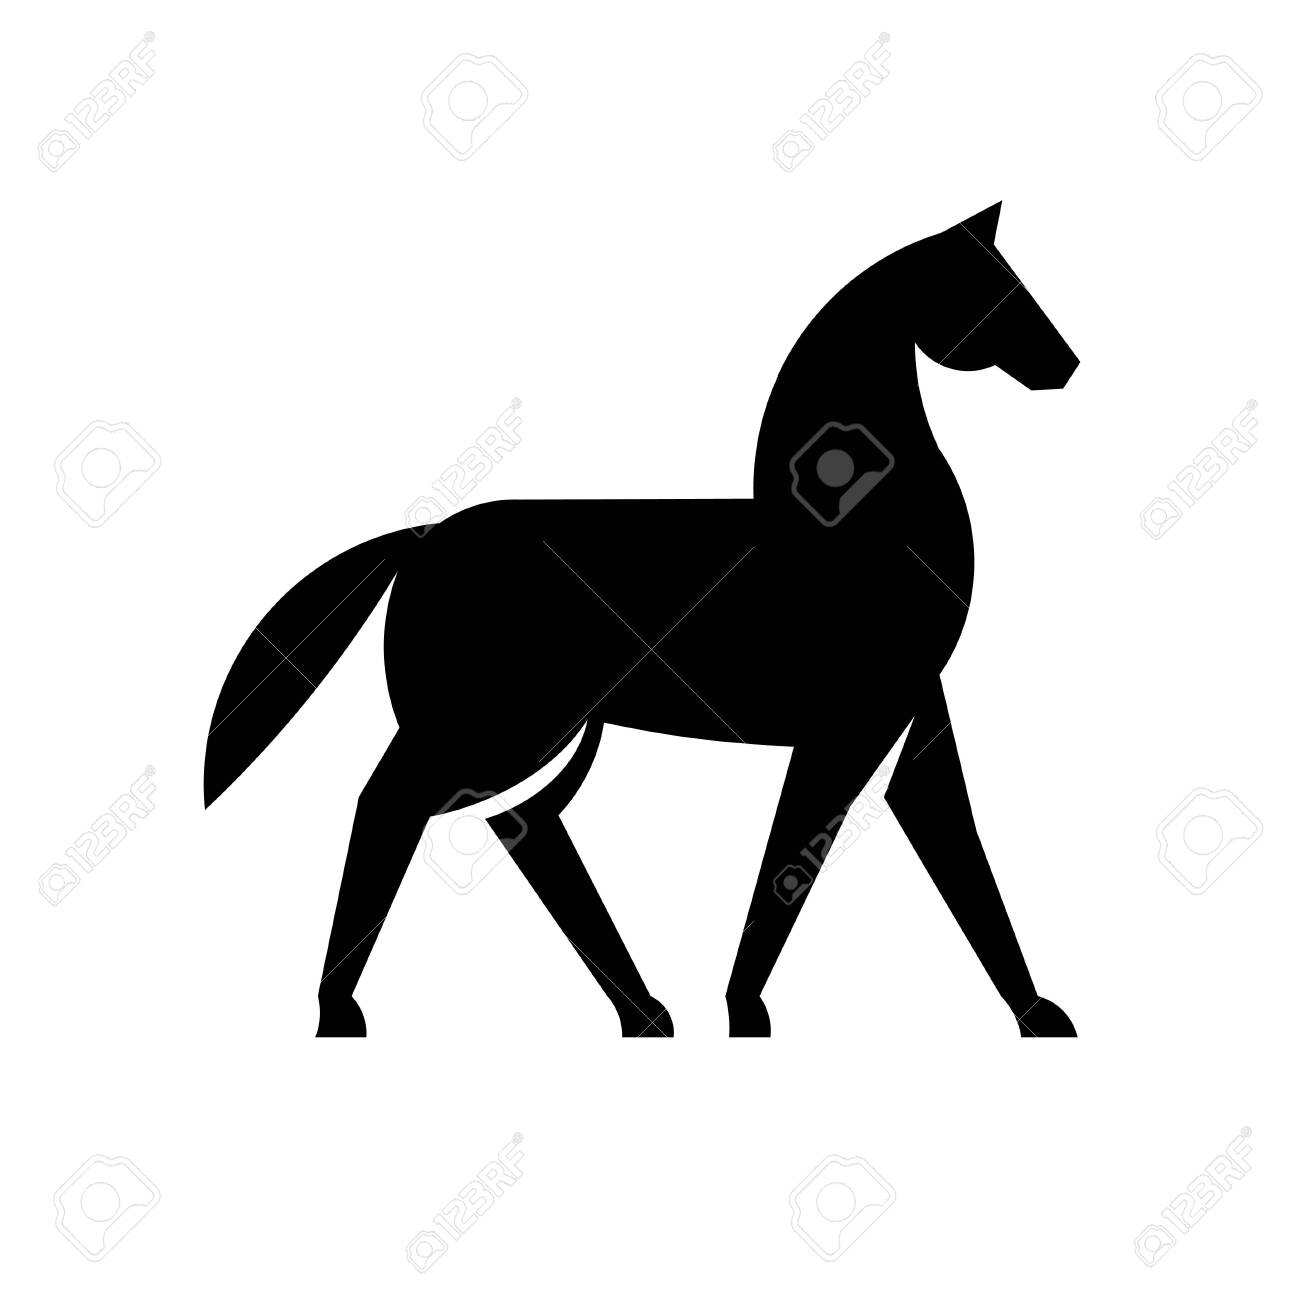 Simple And Memorable Horse Silhouette Logo Design Vector Royalty Free Cliparts Vectors And Stock Illustration Image 130843445